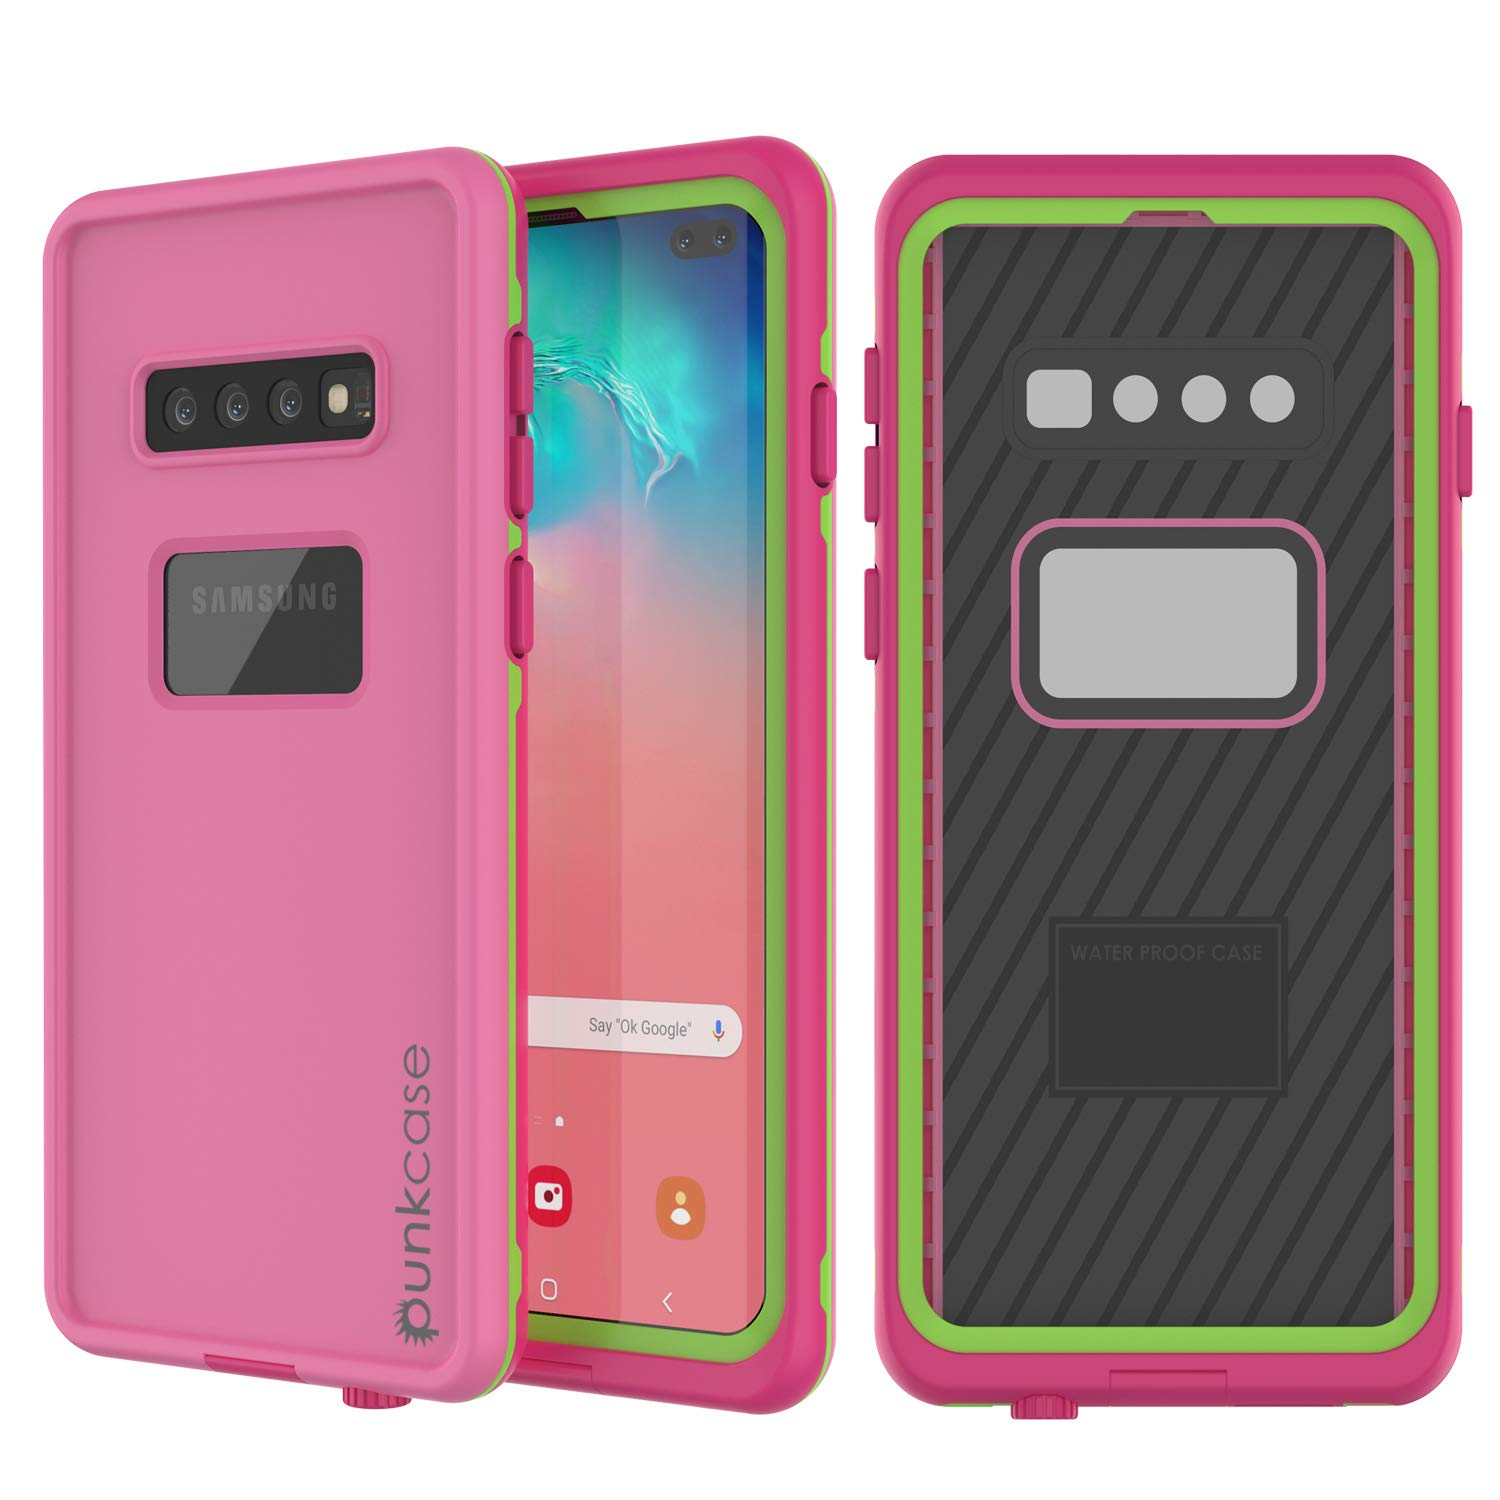 Punkcase S10 Plus Waterproof Case [Aqua Series] [Slim Fit] [IP68 Certified] [Shockproof] [Dirt Proof] Armor Cover W/Built in Screen Protector Compatible W/Samsung Galaxy S10 Plus [Pink]